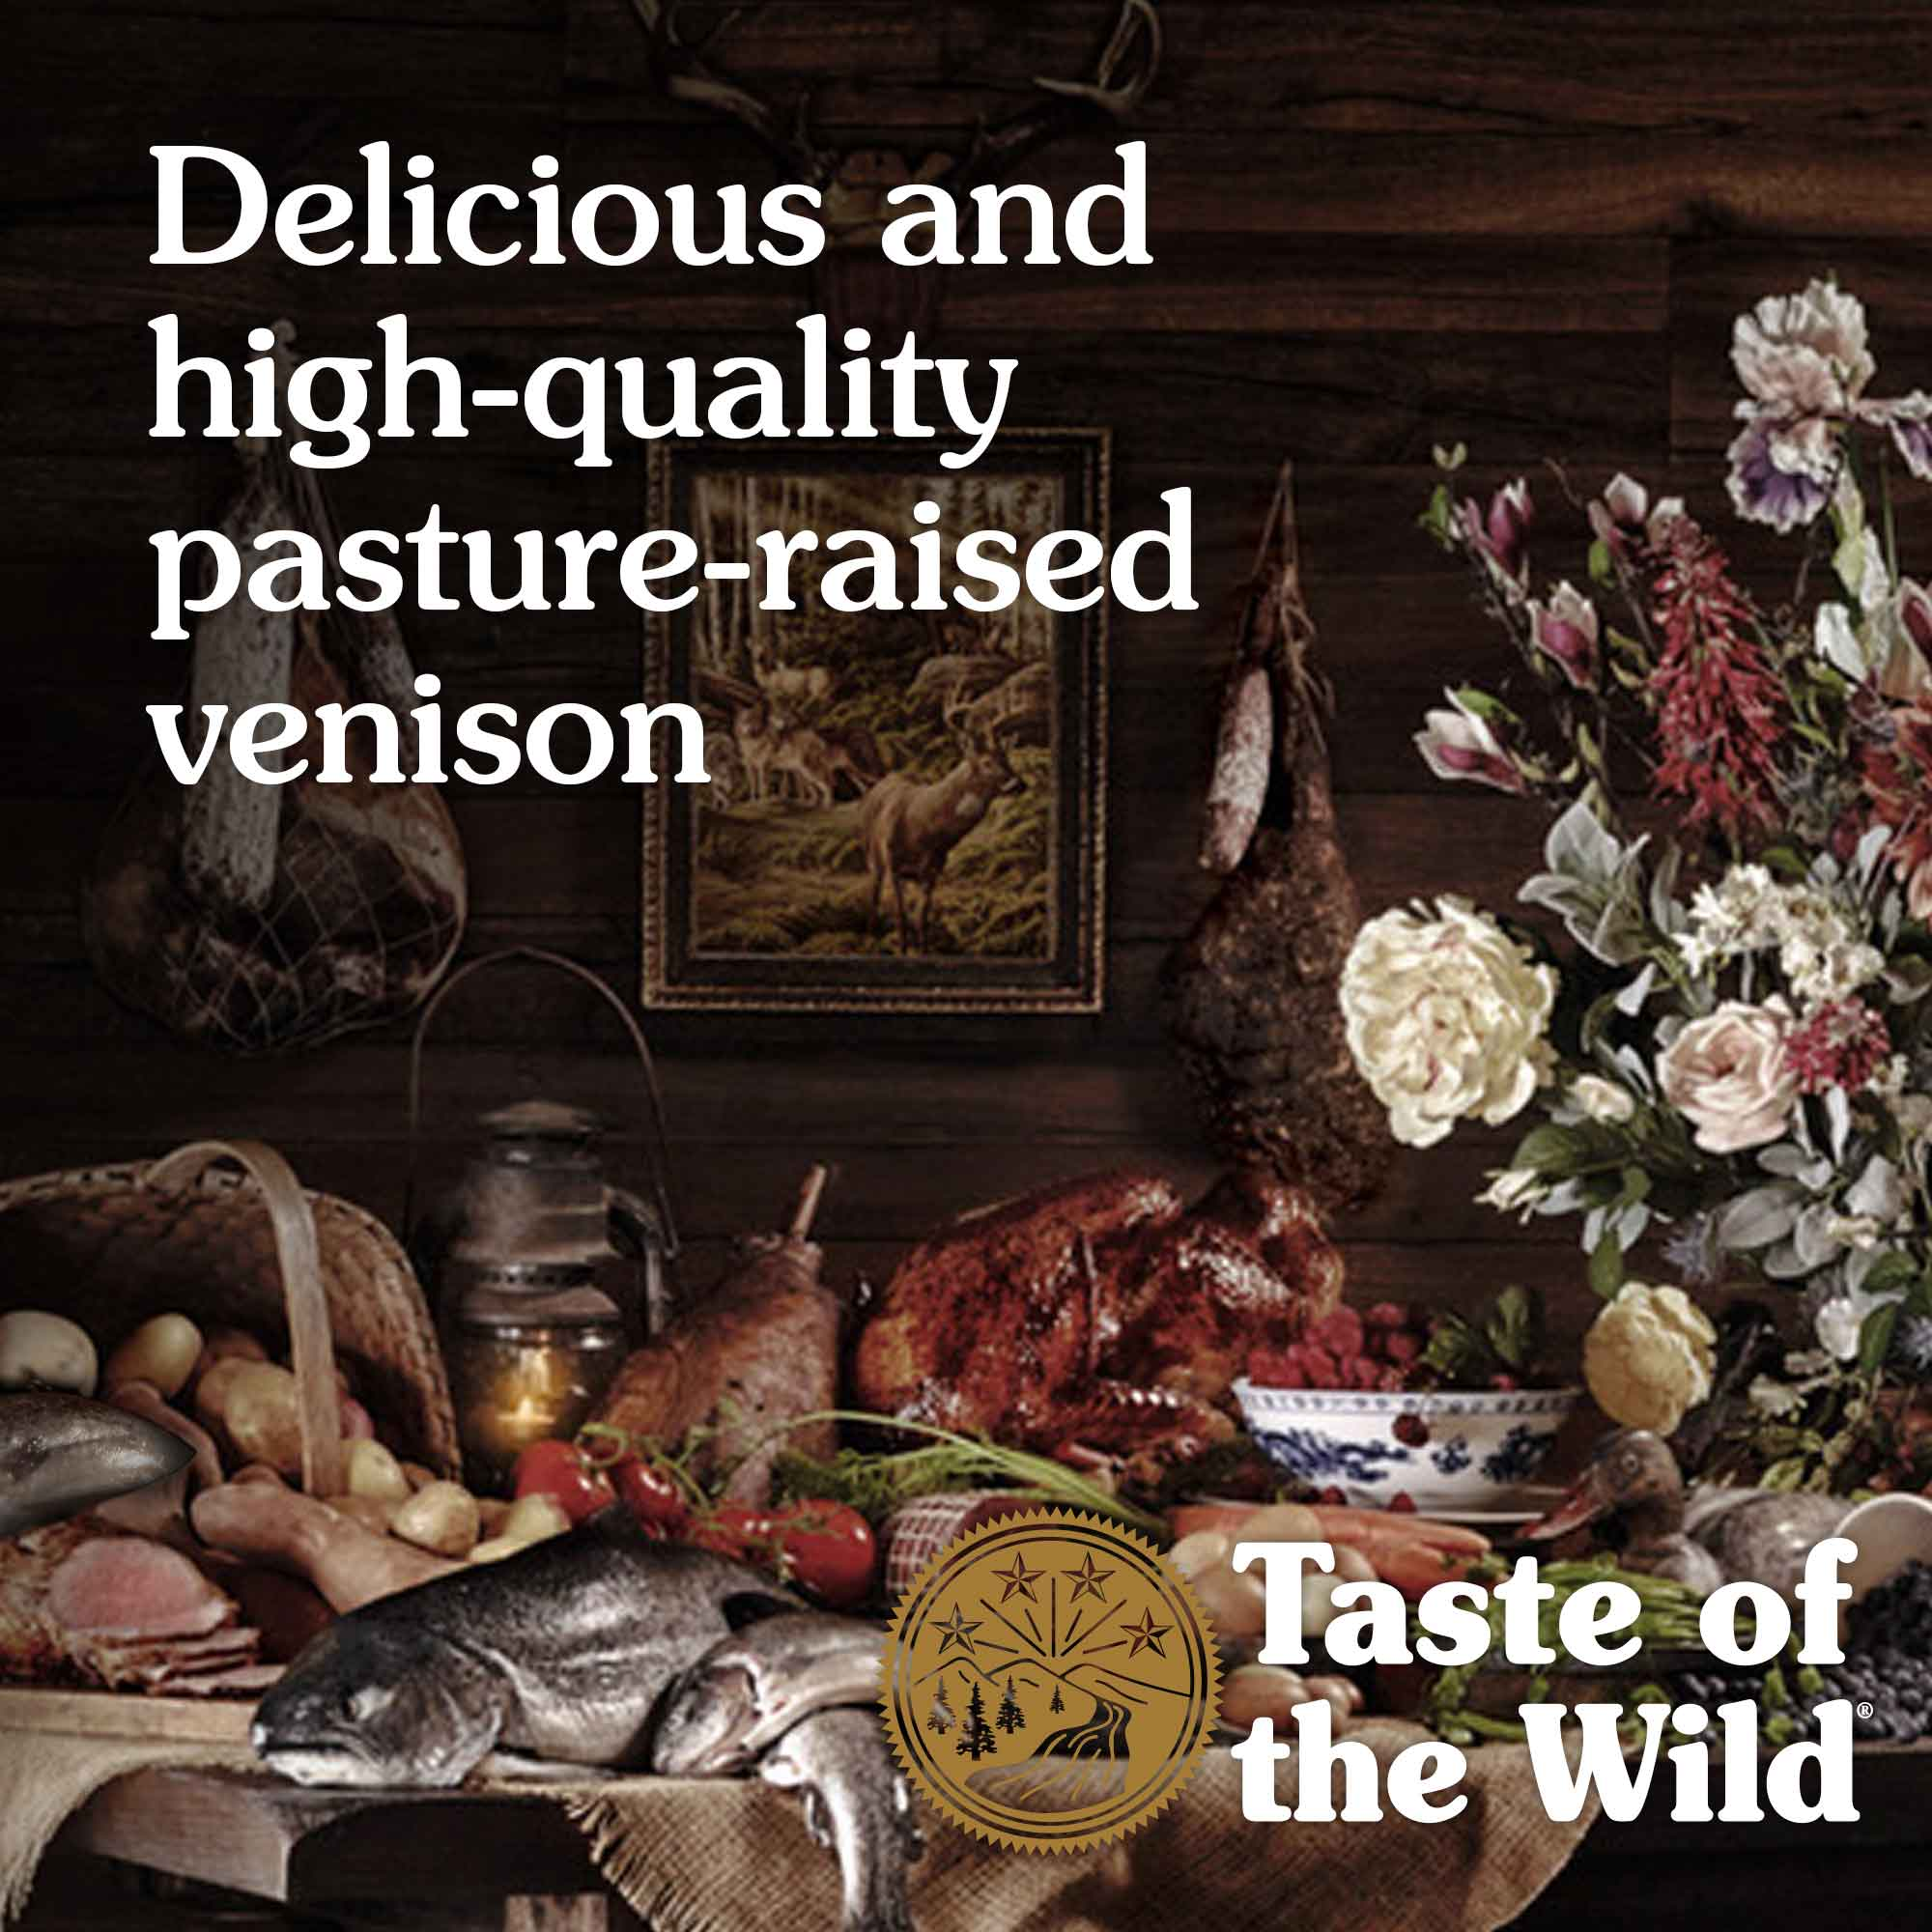 Delicious and high-quality pasture-raised venison